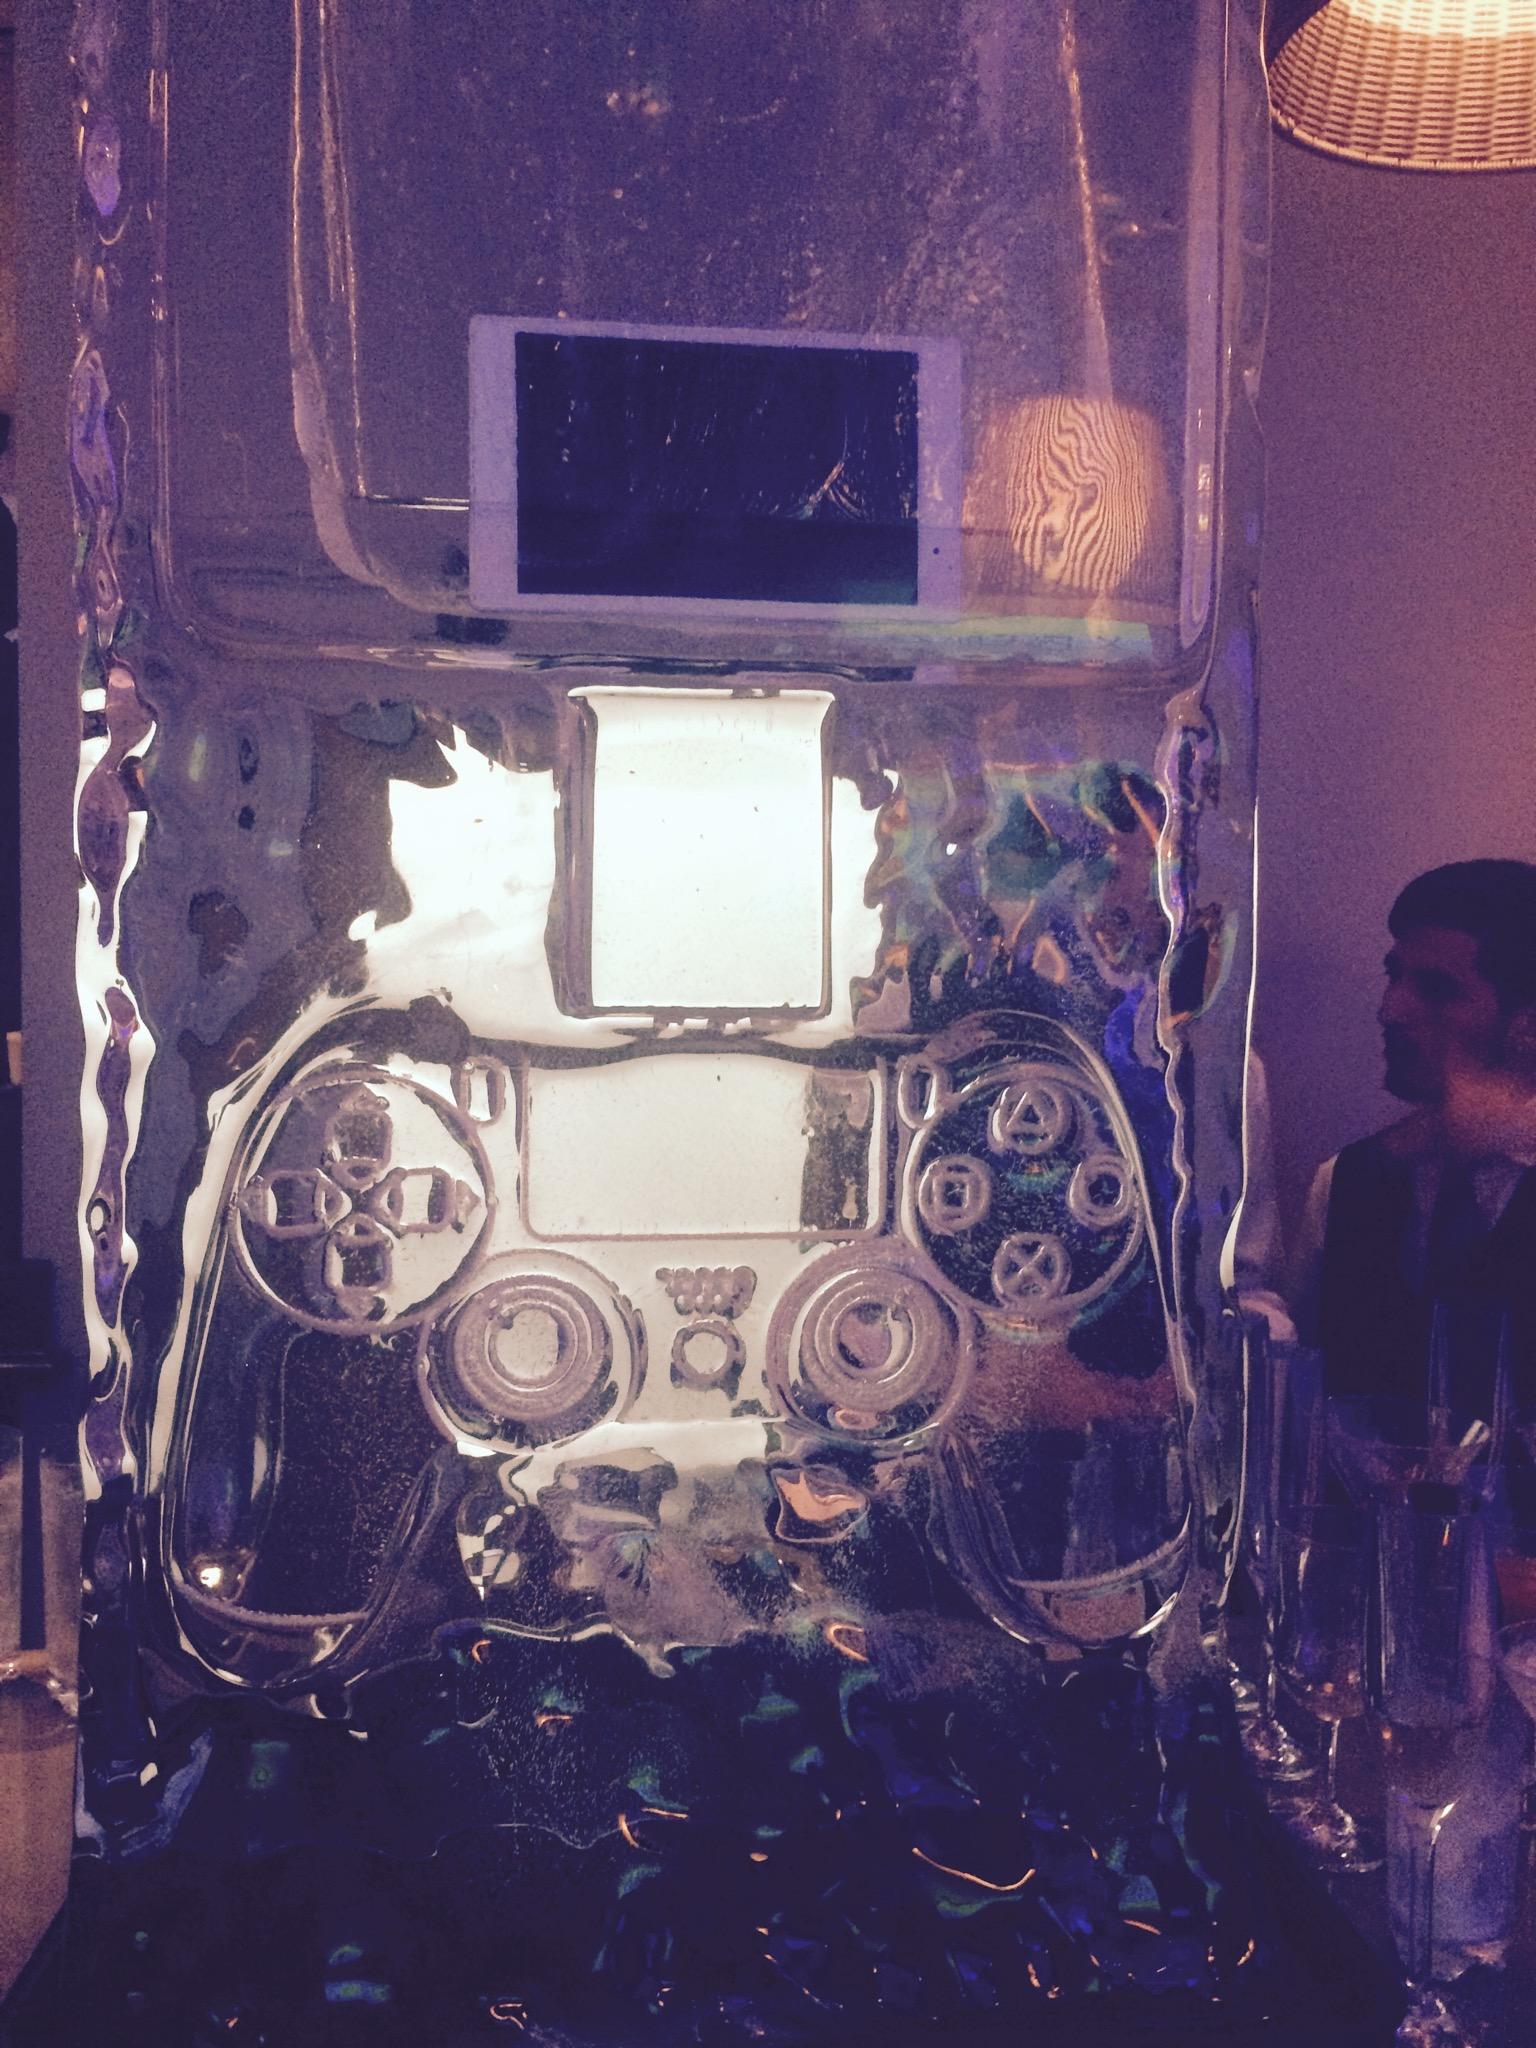 Playstation Ice sculpture at the bar